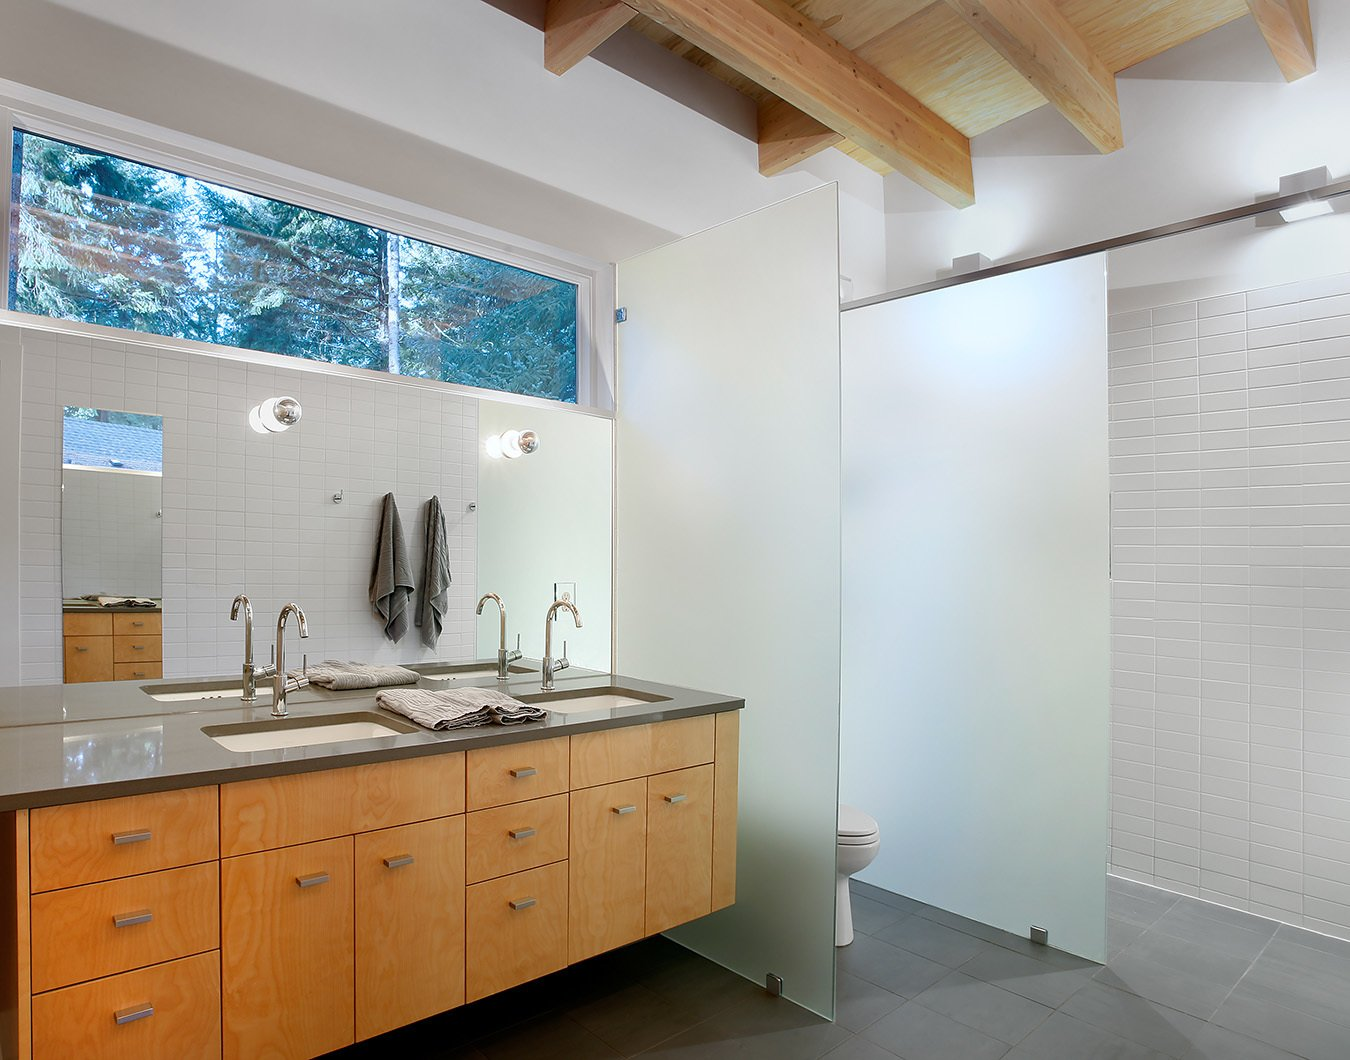 Matching Ladena sinks by Kohler, outfitted with Talis S faucets by Hansgrohe, stand inside polished Stormy Sky countertops by PentalQuartz.  Bathroom from Courtyard House on a River